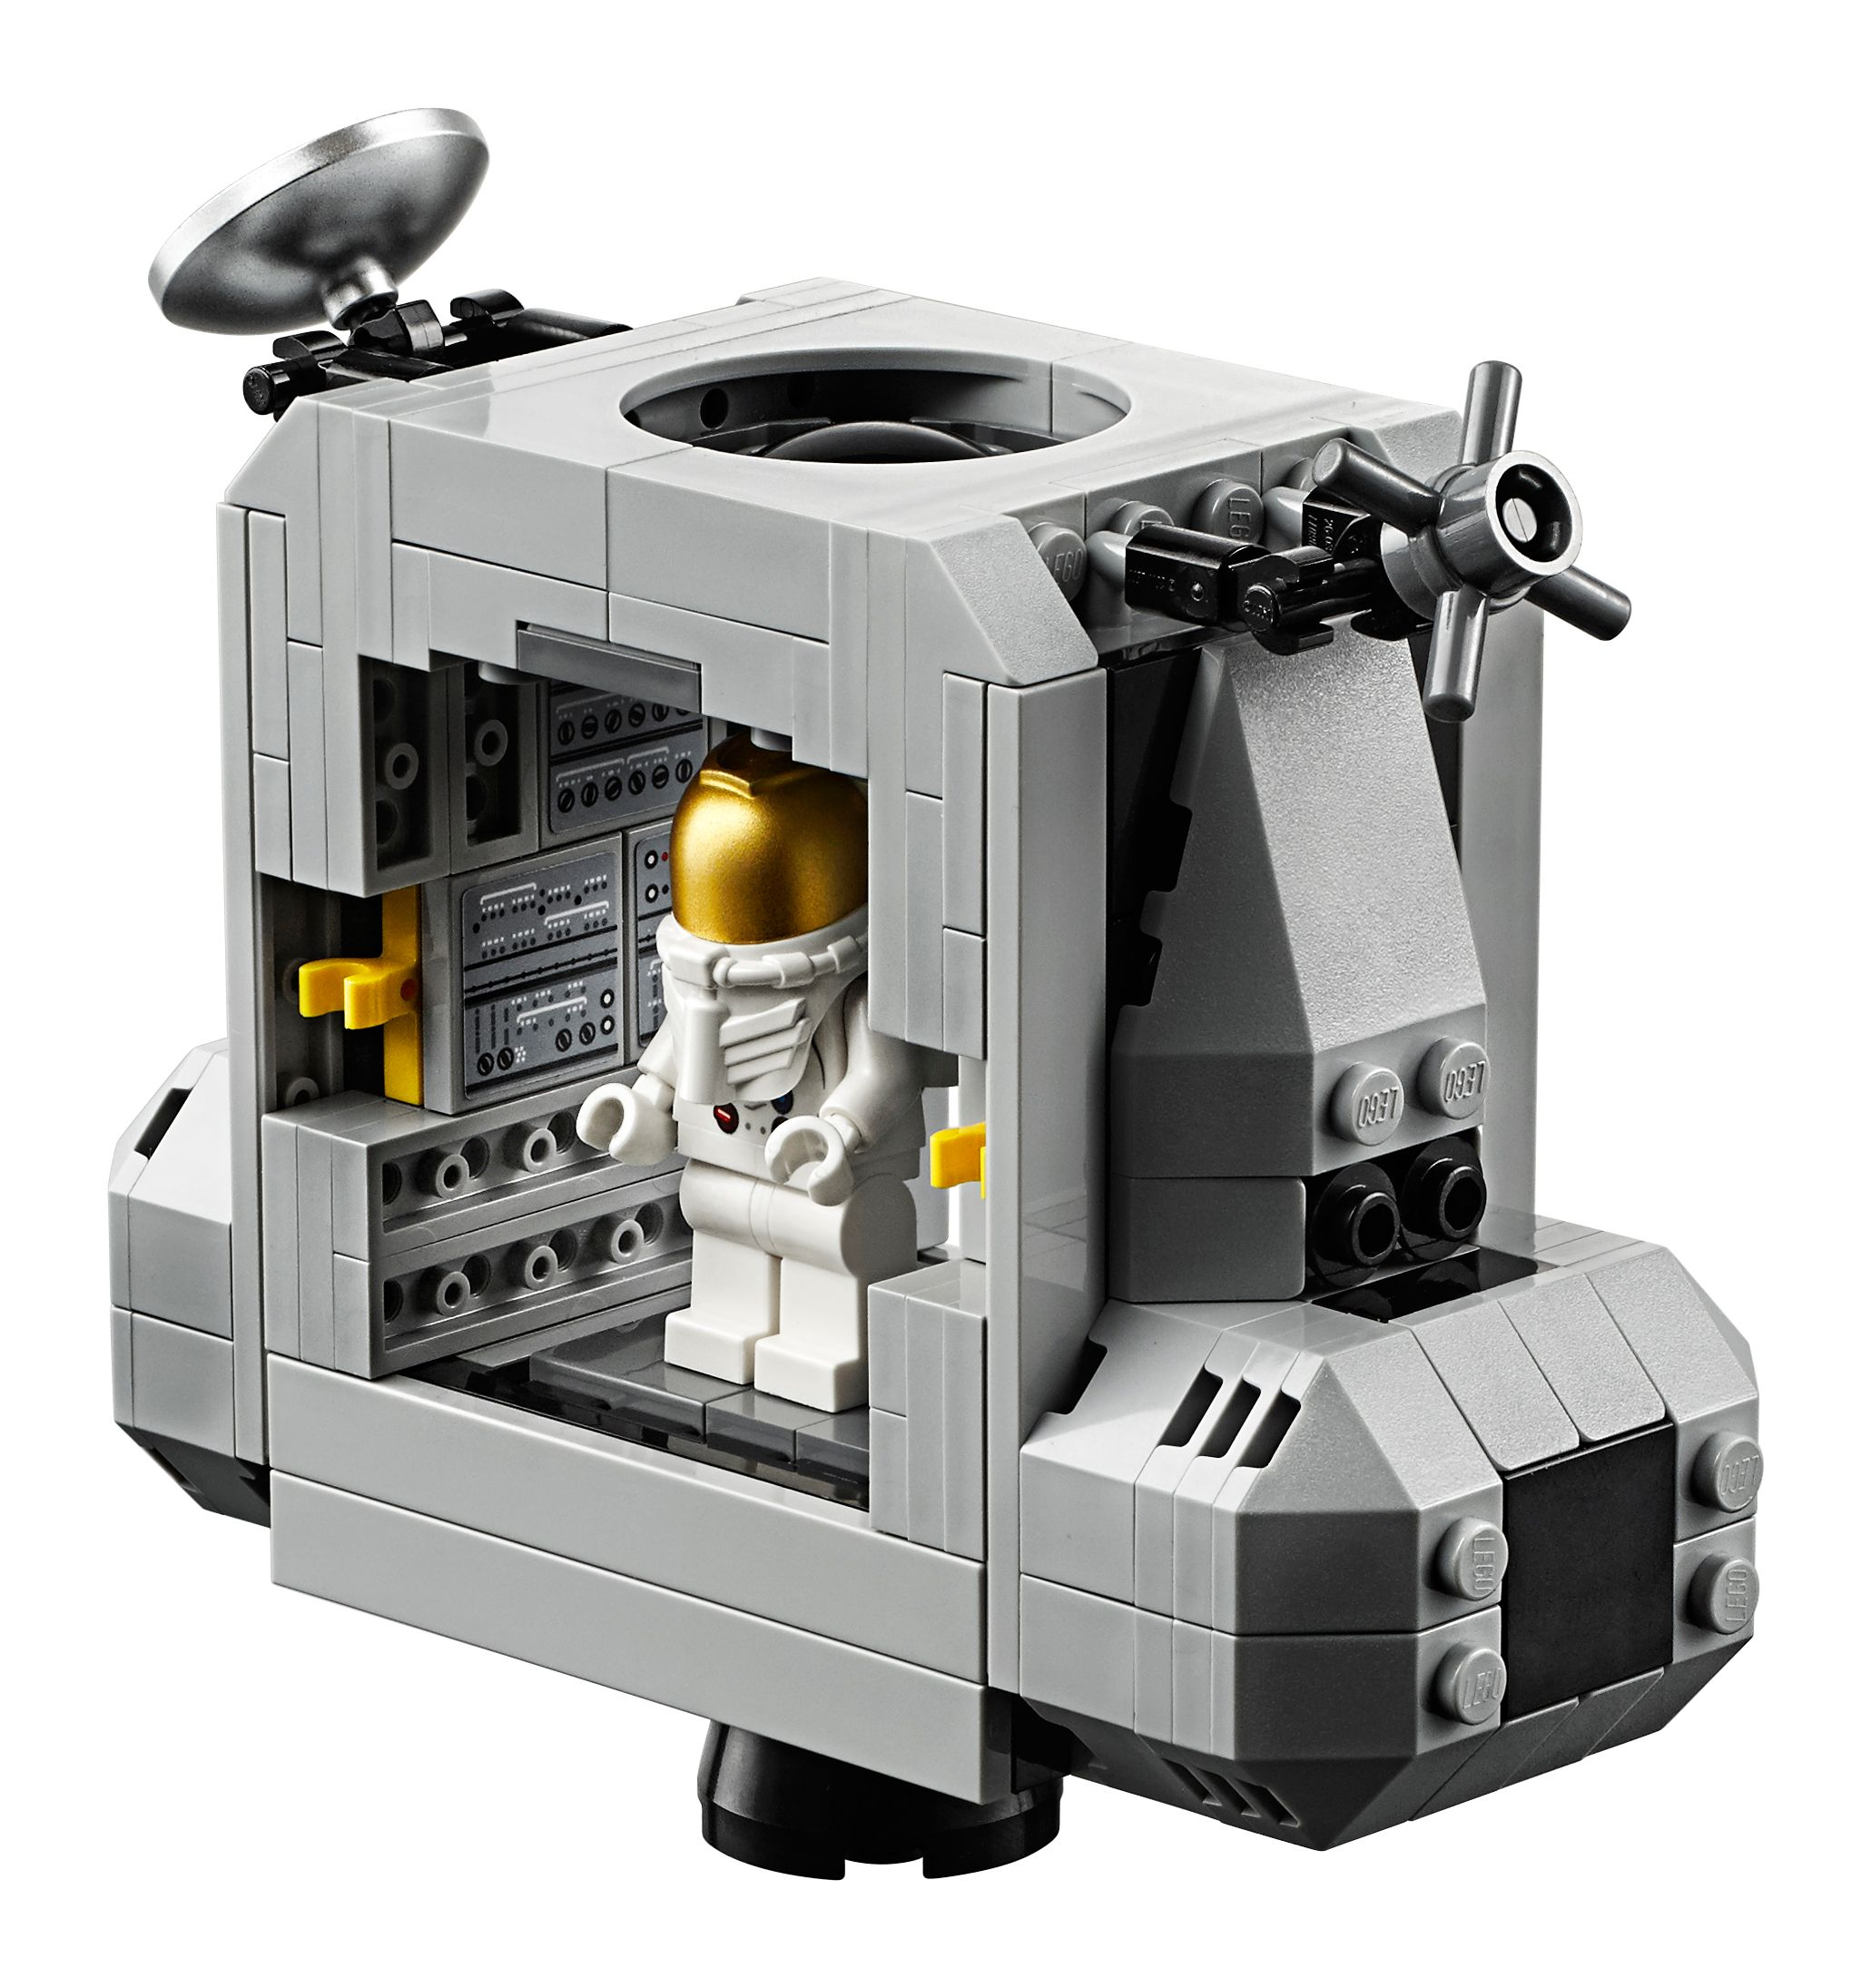 LEGO Advanced Models 10266 NASA Apollo 11 Mondlandefähre LEGO_10266_alt13.jpg